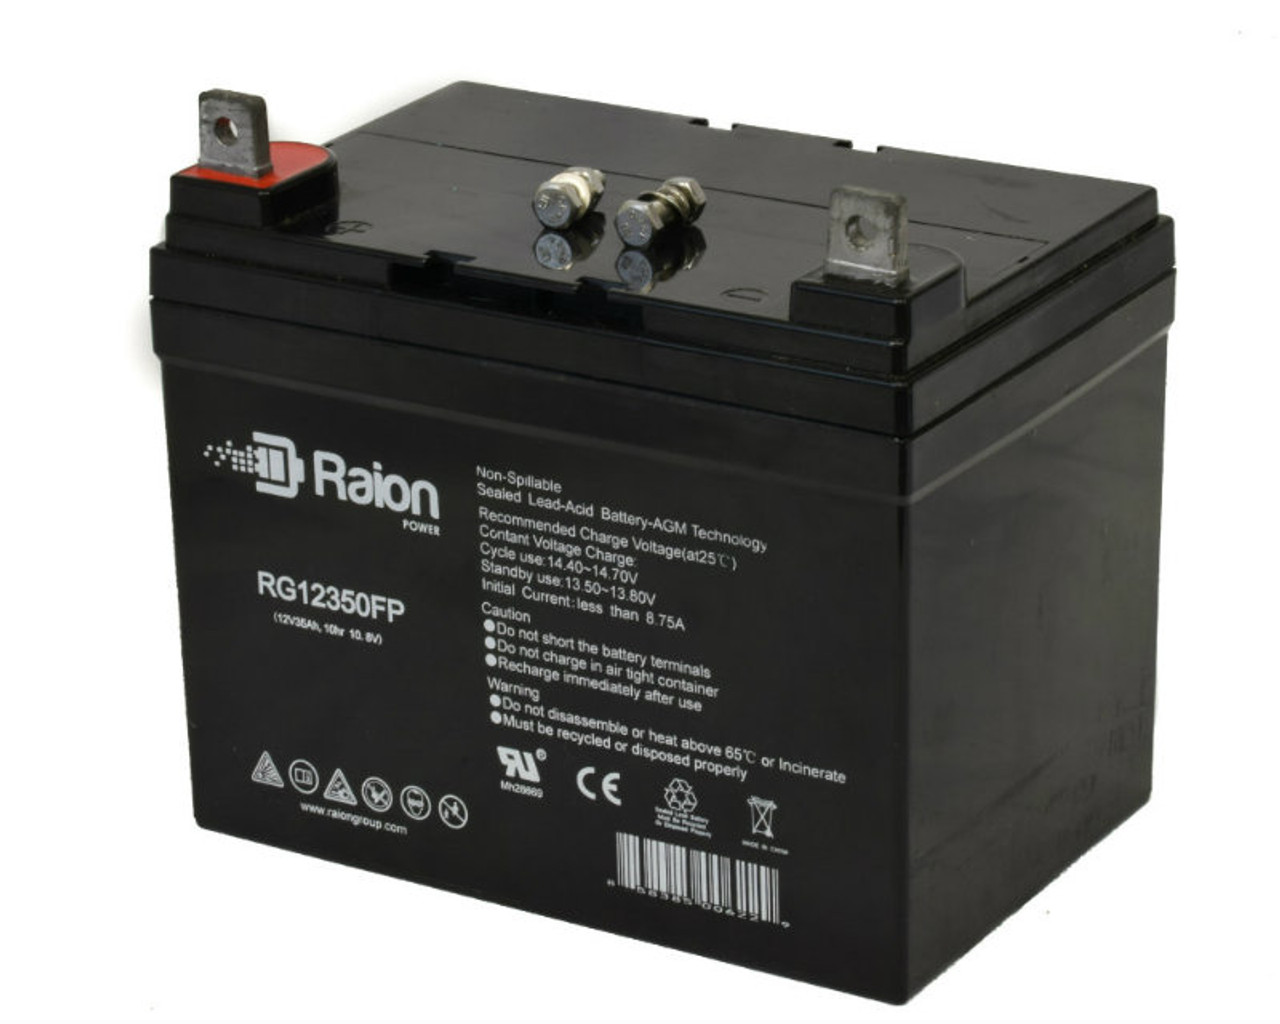 Raion Power RG12350FP Replacement Wheelchair Battery For Falcon Rehab ACT Ultra Low (1 Pack)